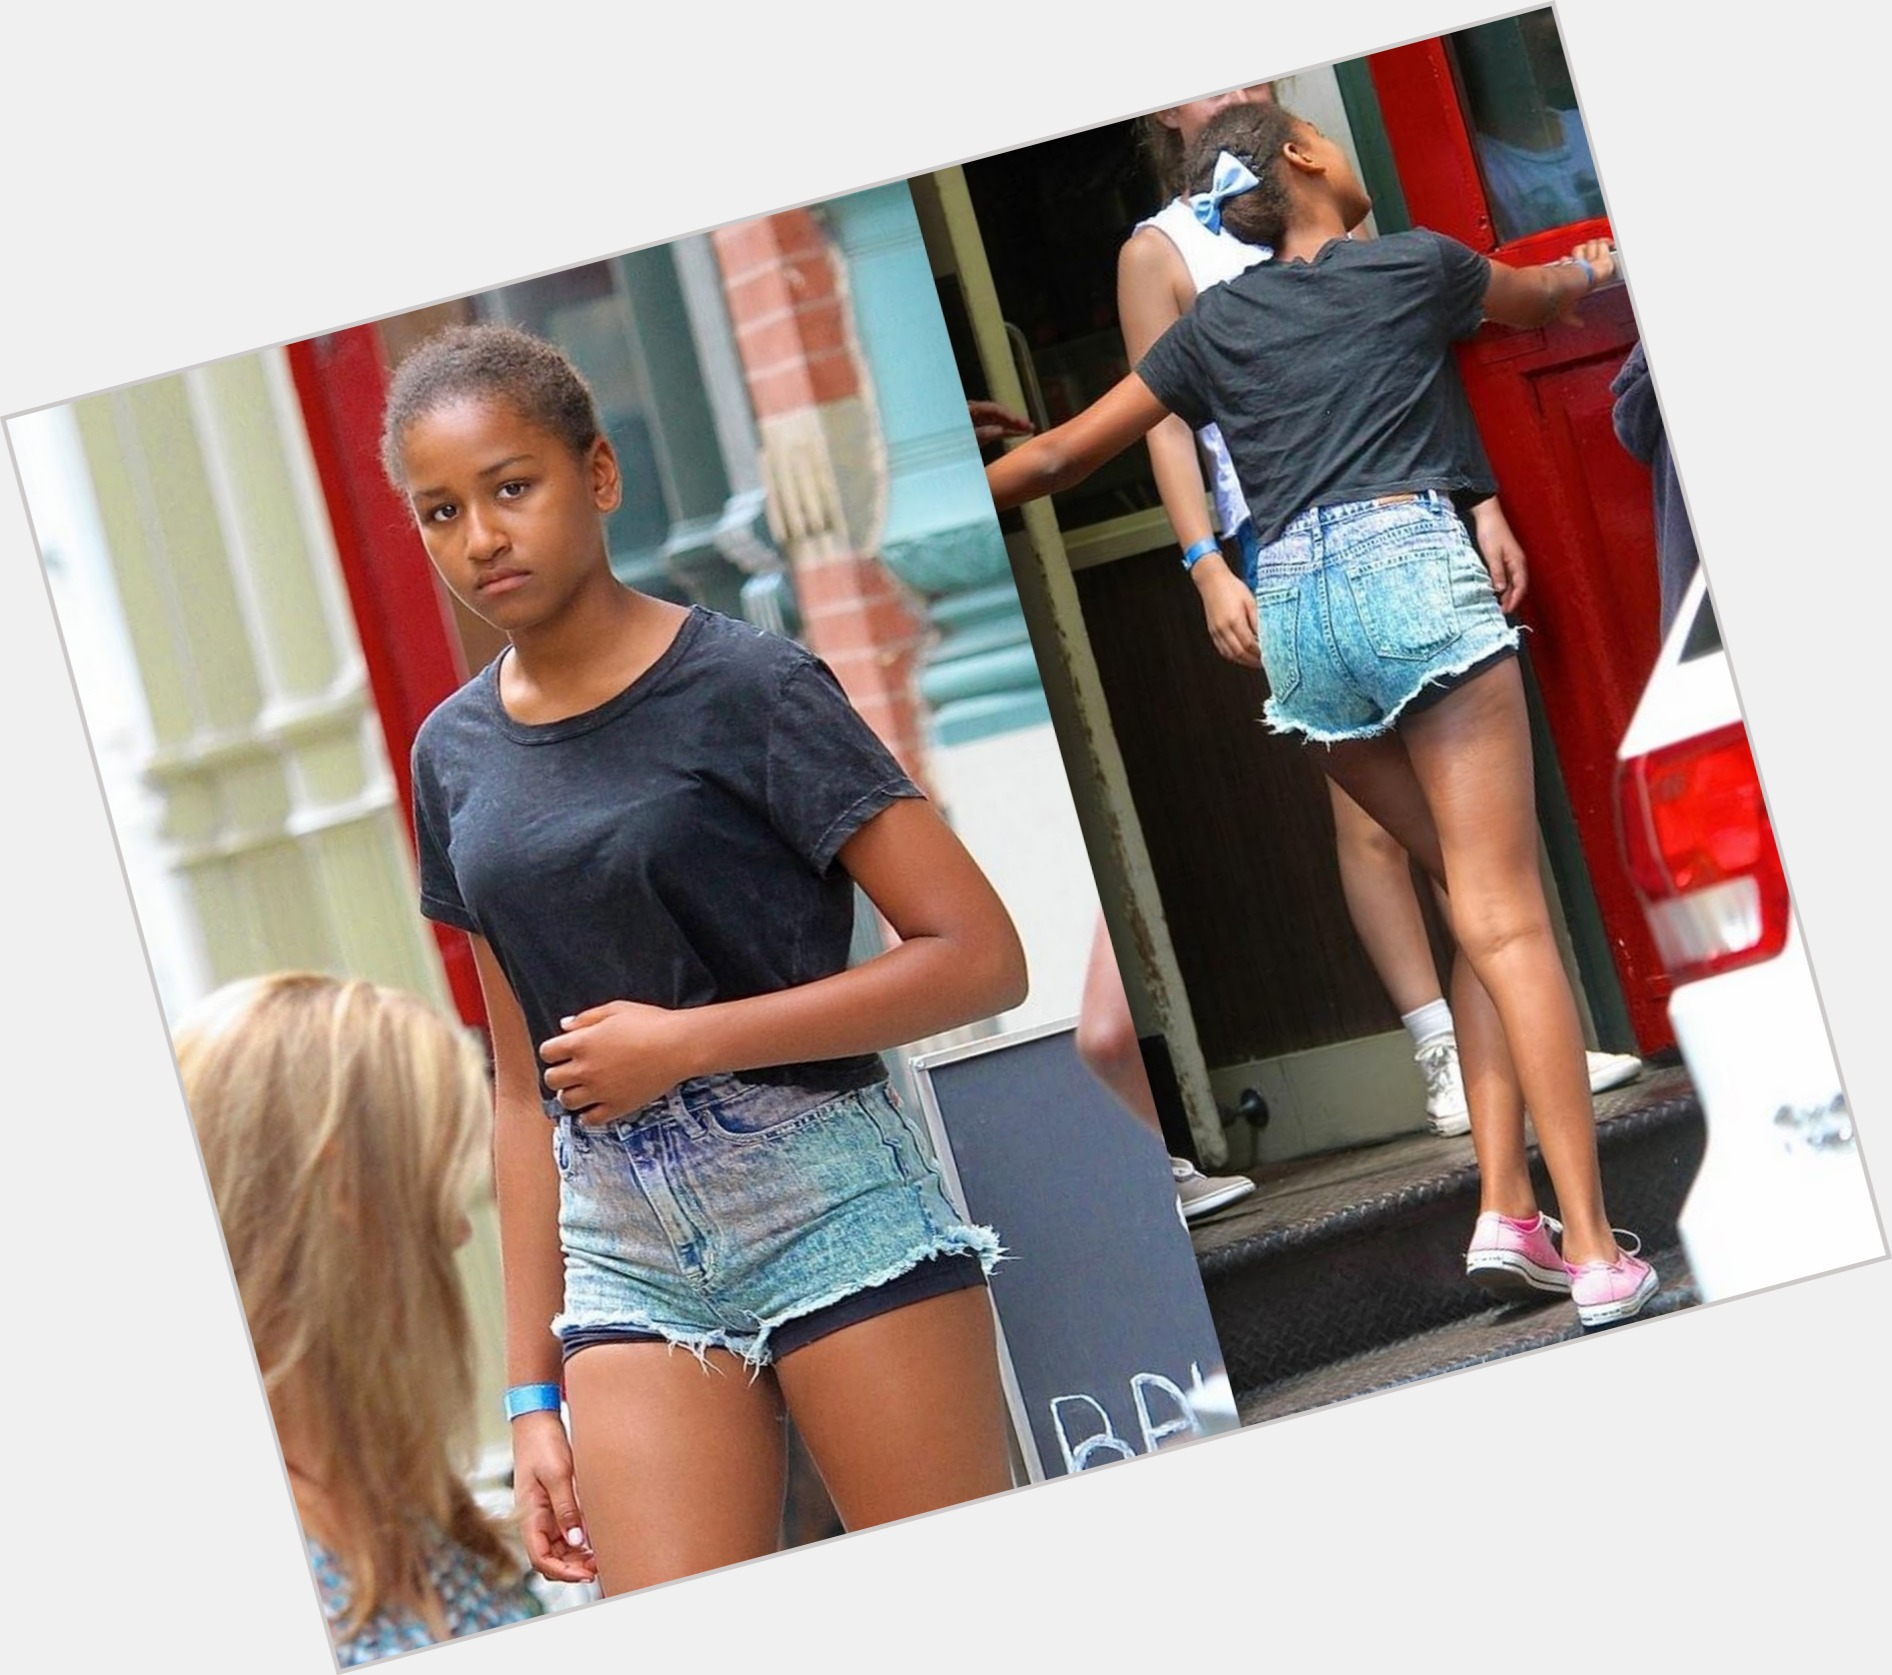 sasha obama and justin bieber 6.jpg